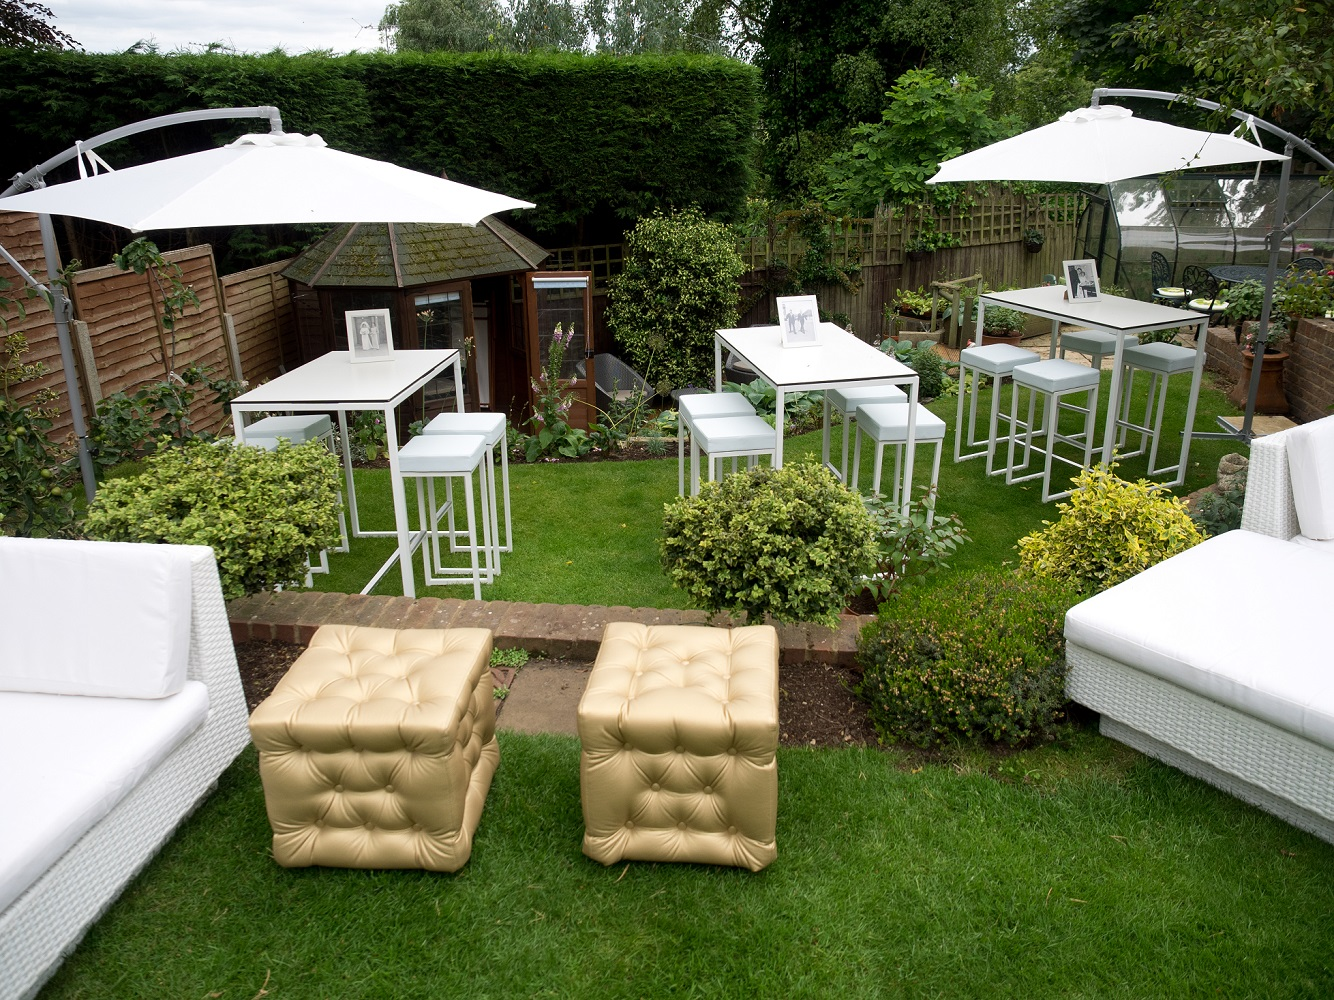 Gold chesterfield ottomans with kubo bistro sets for hire